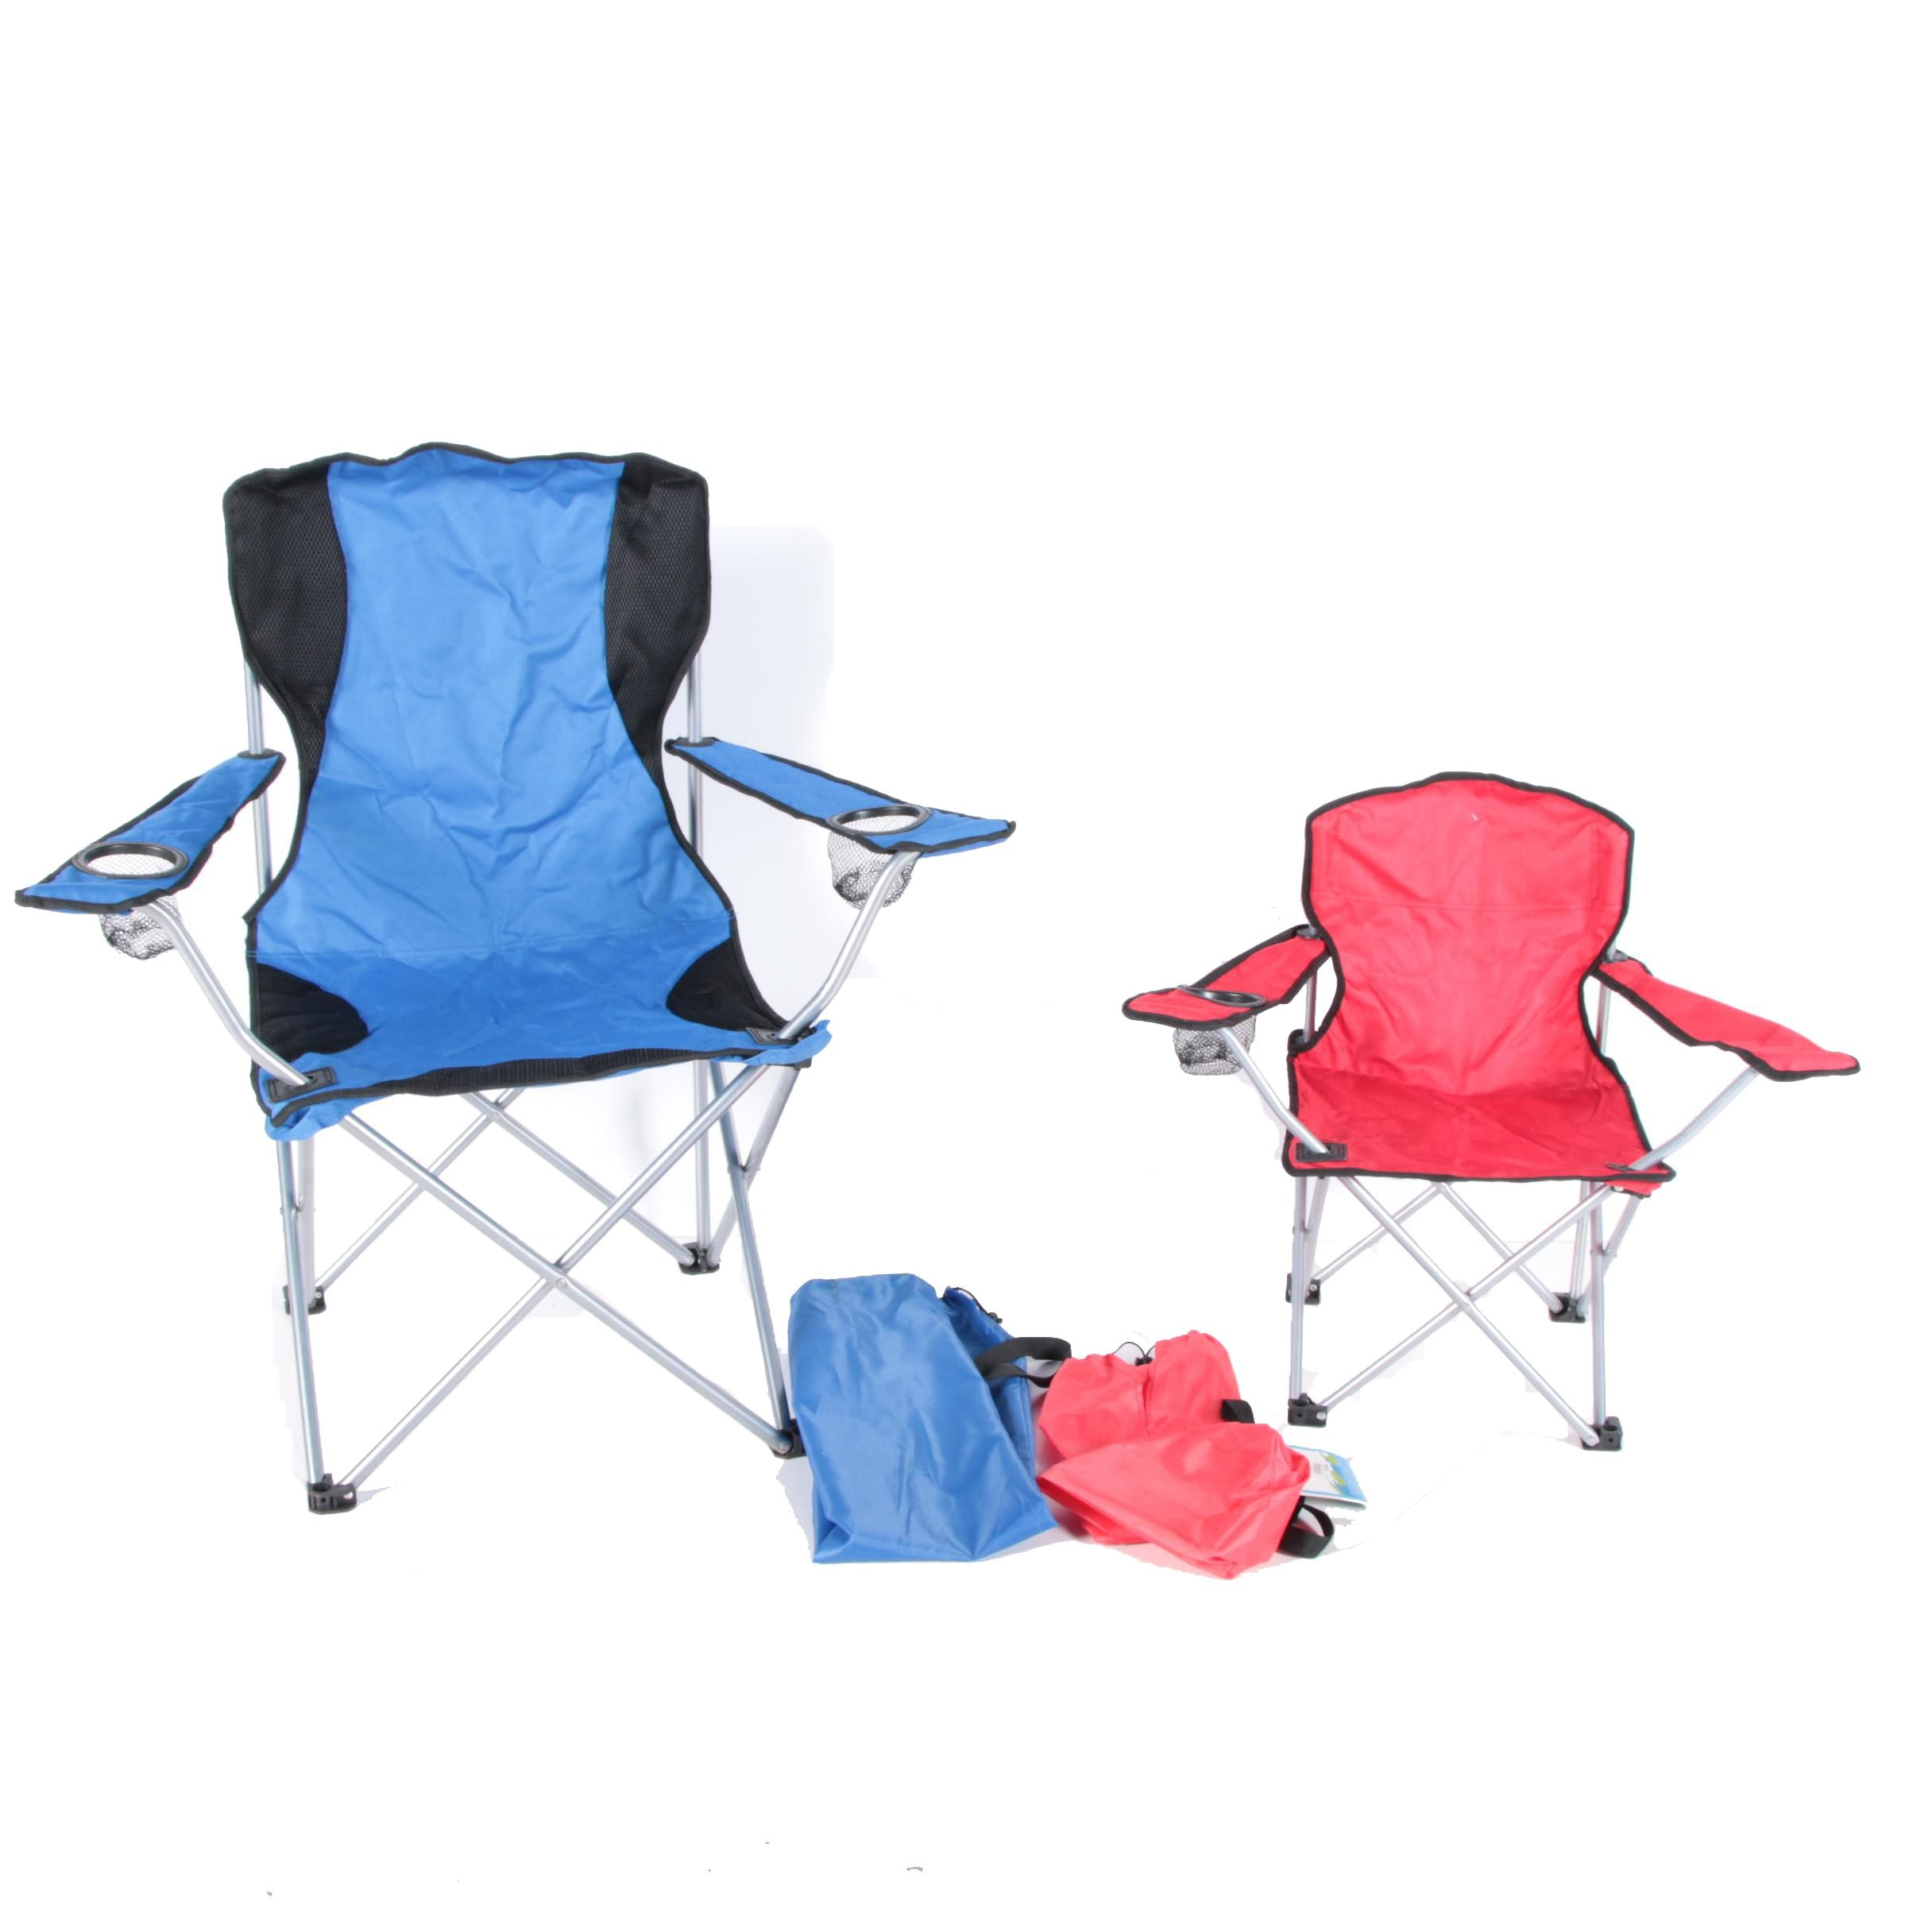 Adult and Child Sized Folding Chairs